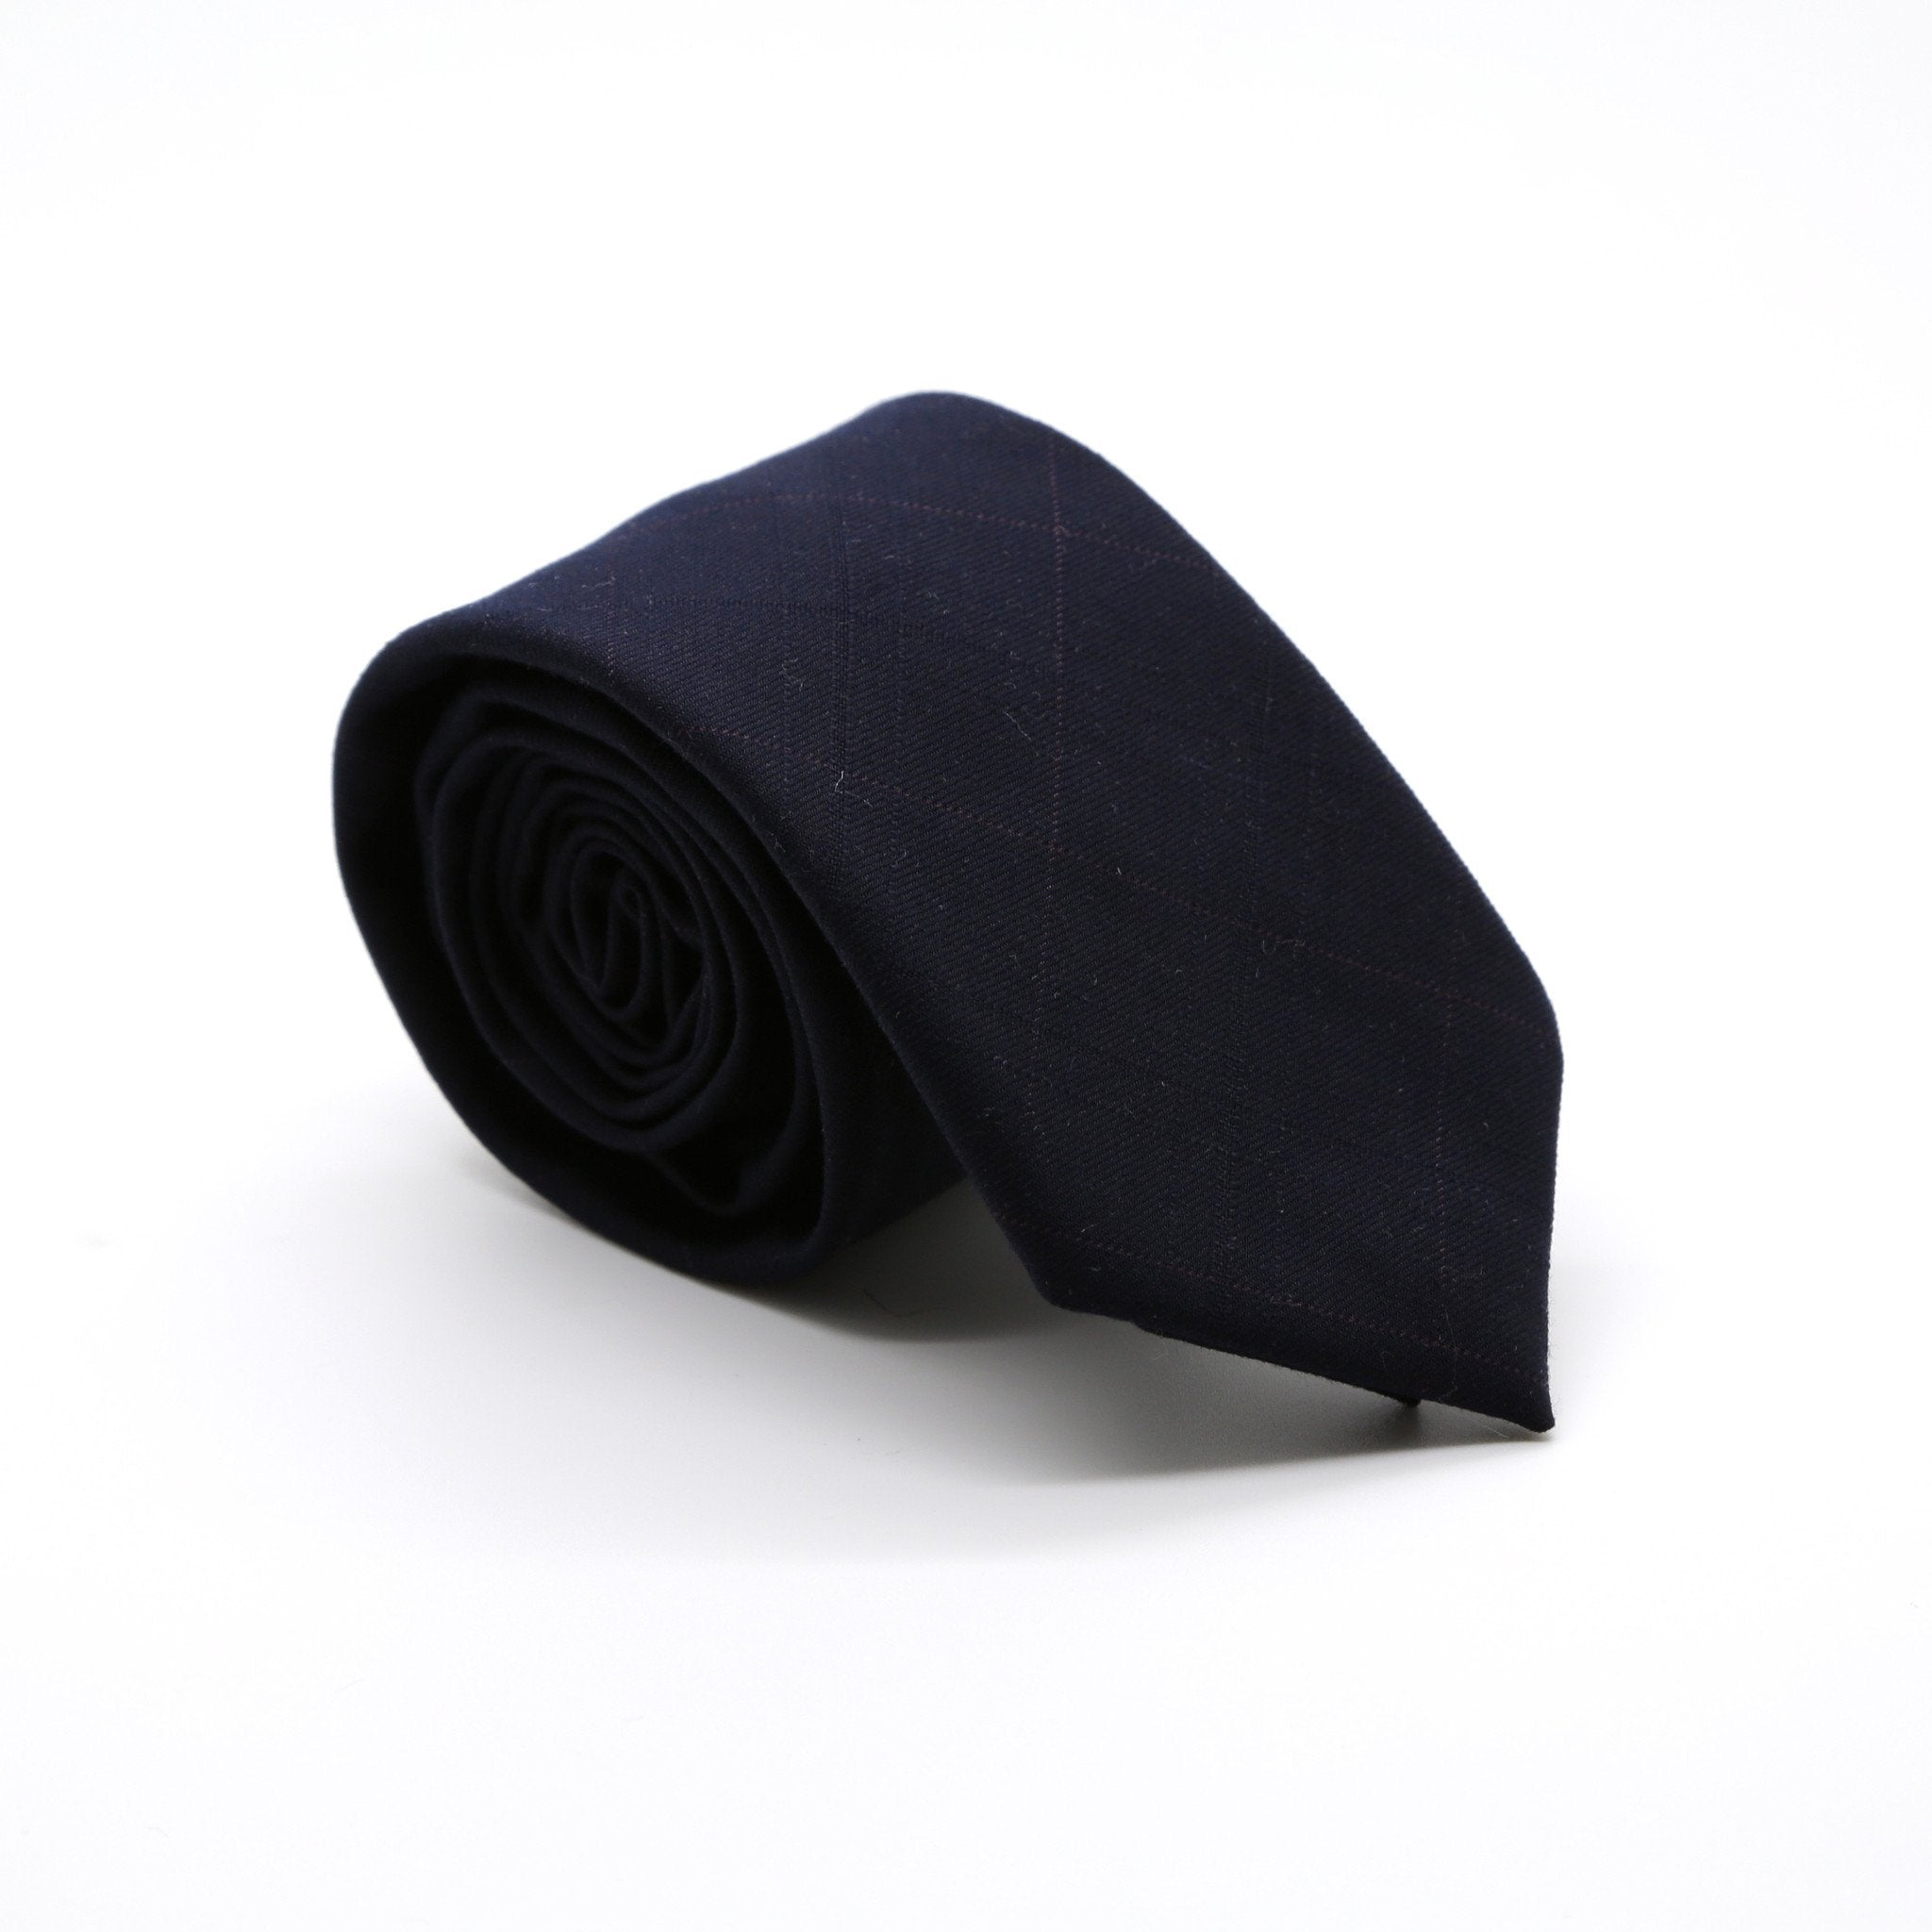 Slim Navy Blue Shiny Plaid Neckties & Handkerchief - Giorgio's Menswear